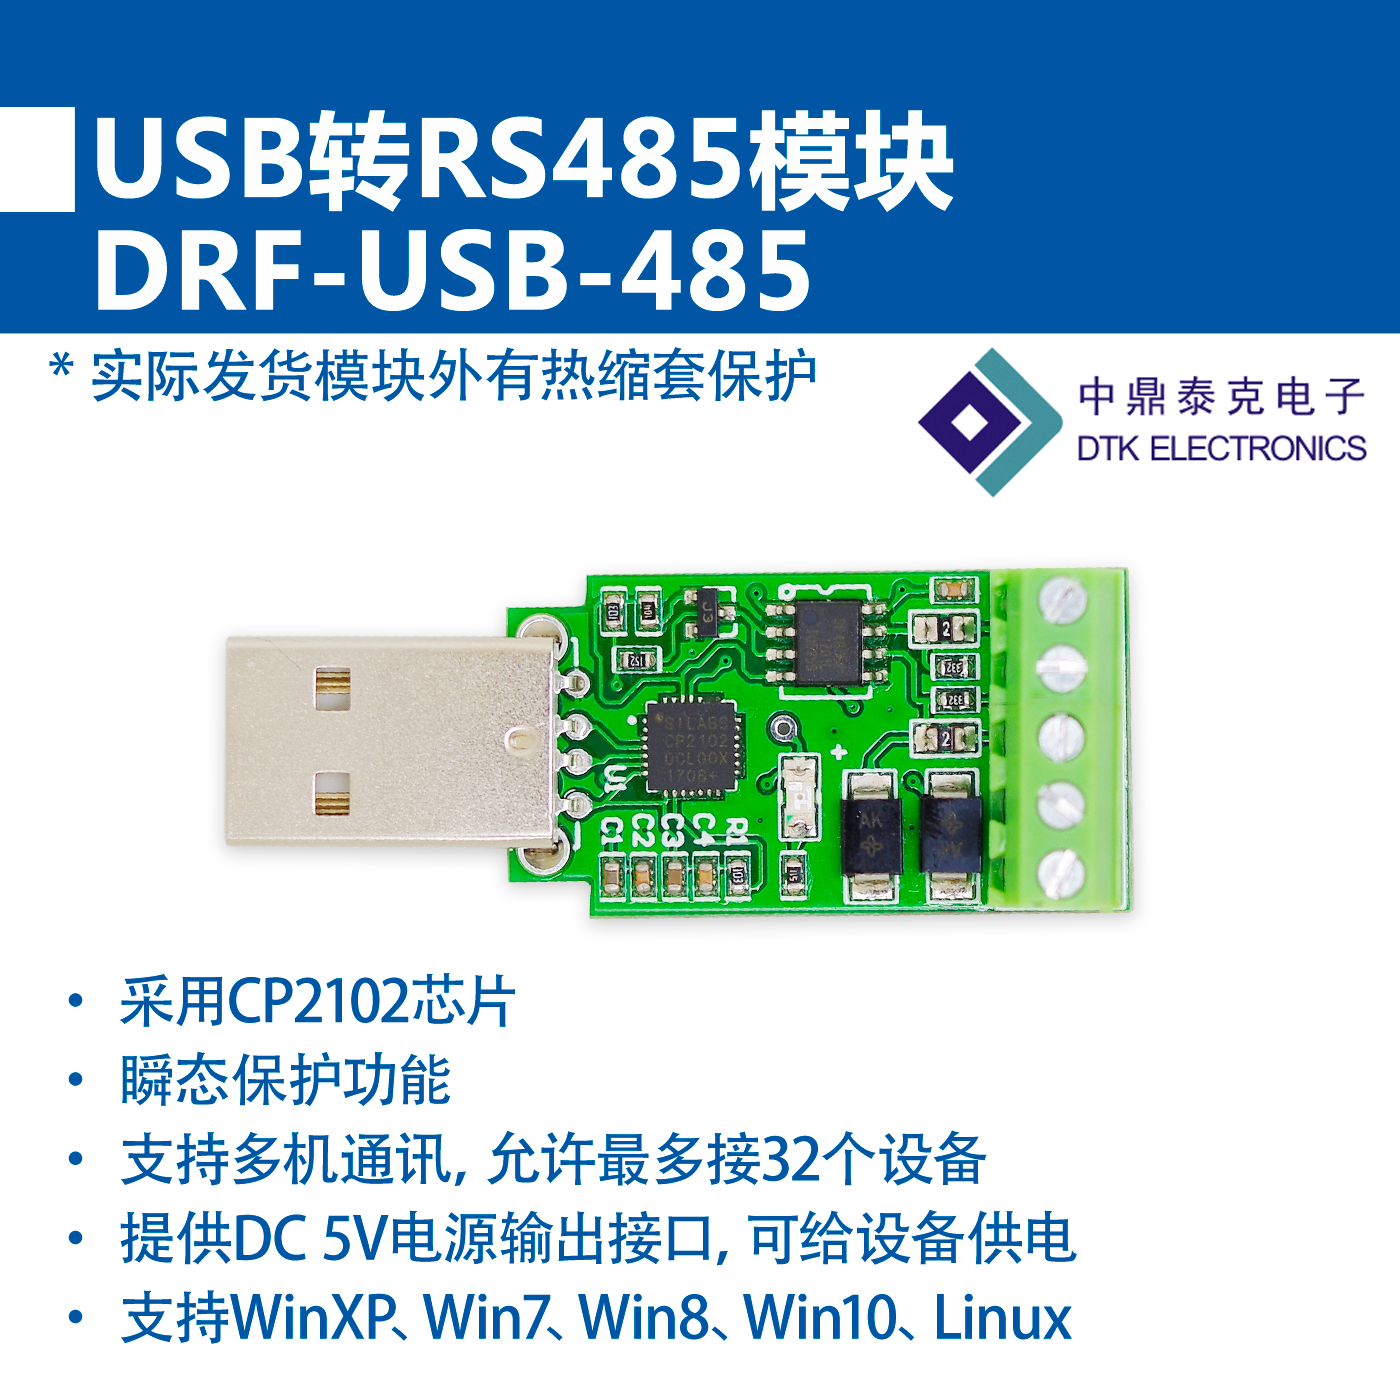 USB to RS485 Module, CP2102 Chip, Support 5V Power Supply Output